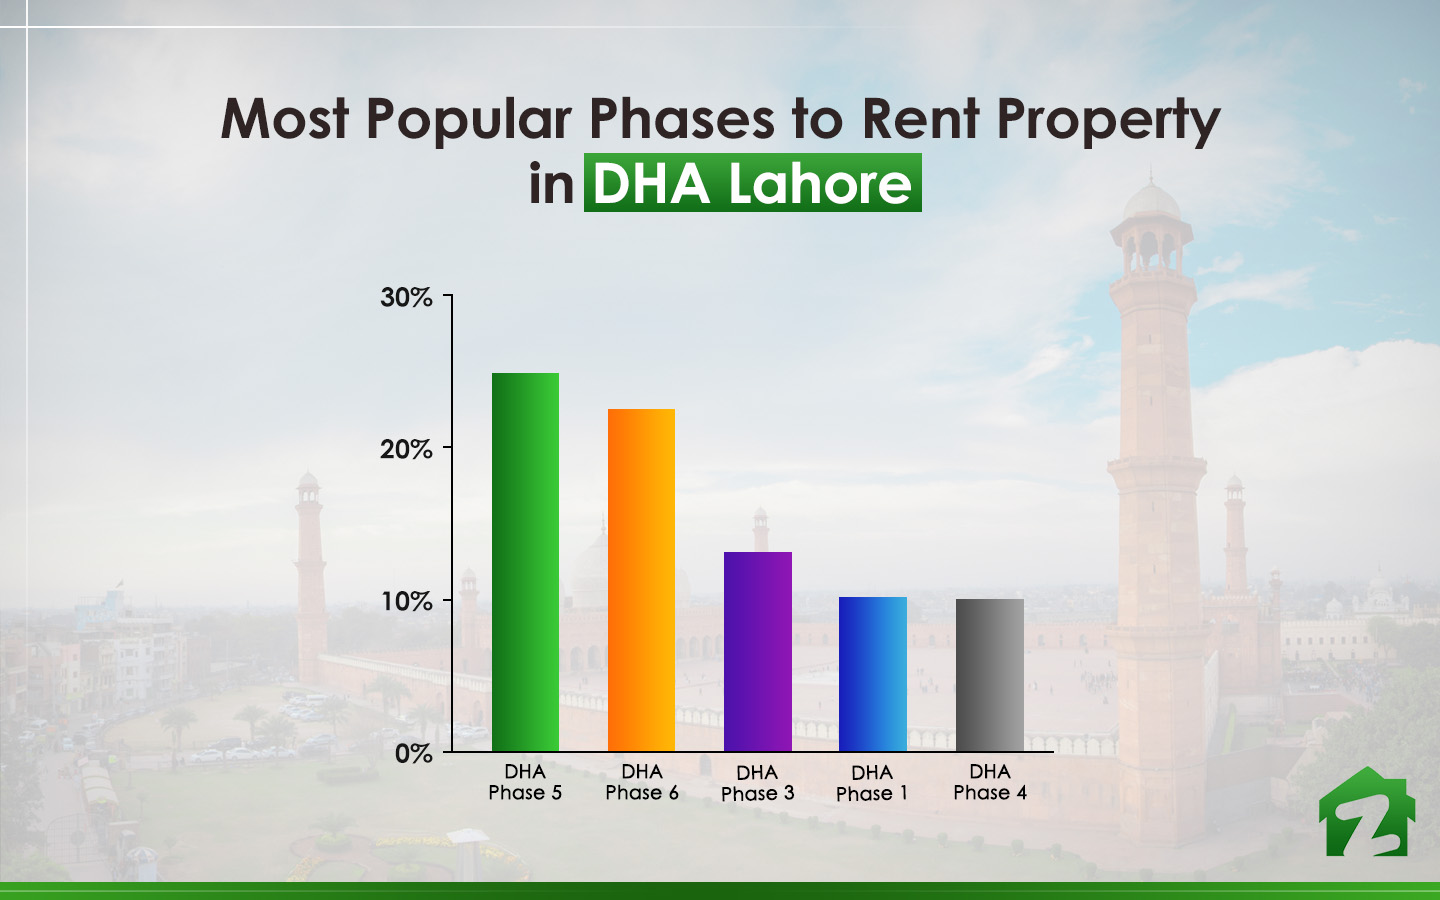 Popular phases to rent property in DHA Lahore